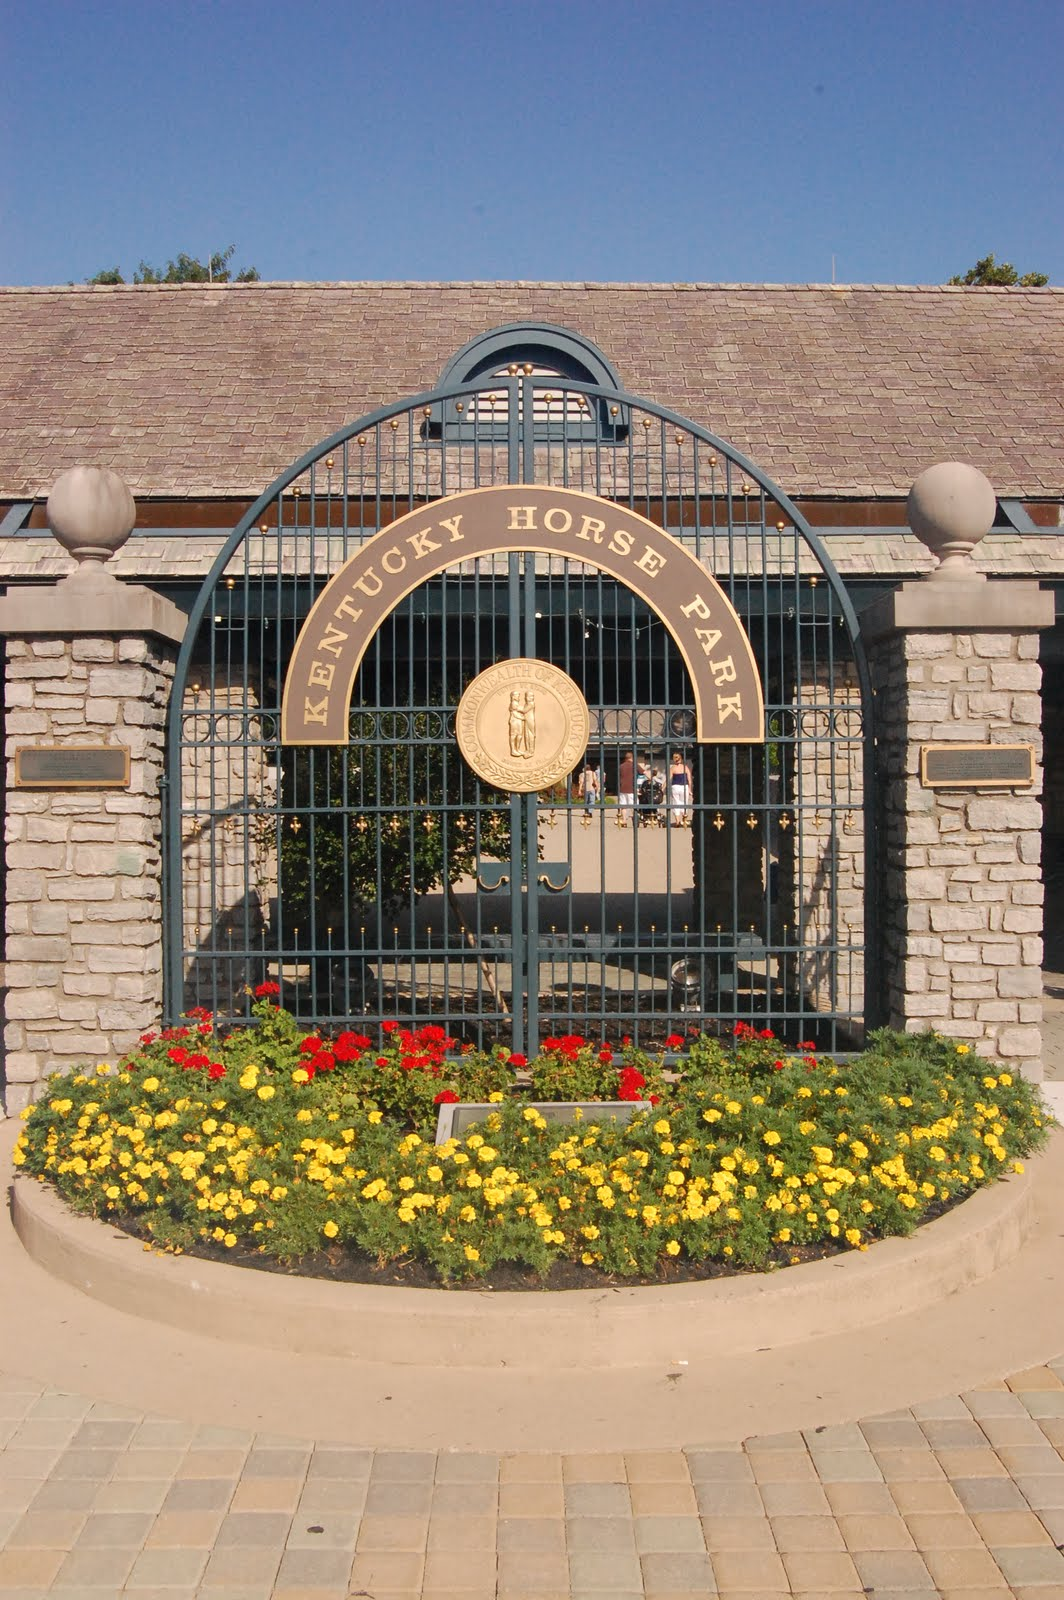 Between The Fenceposts: The Kentucky Horse Park on